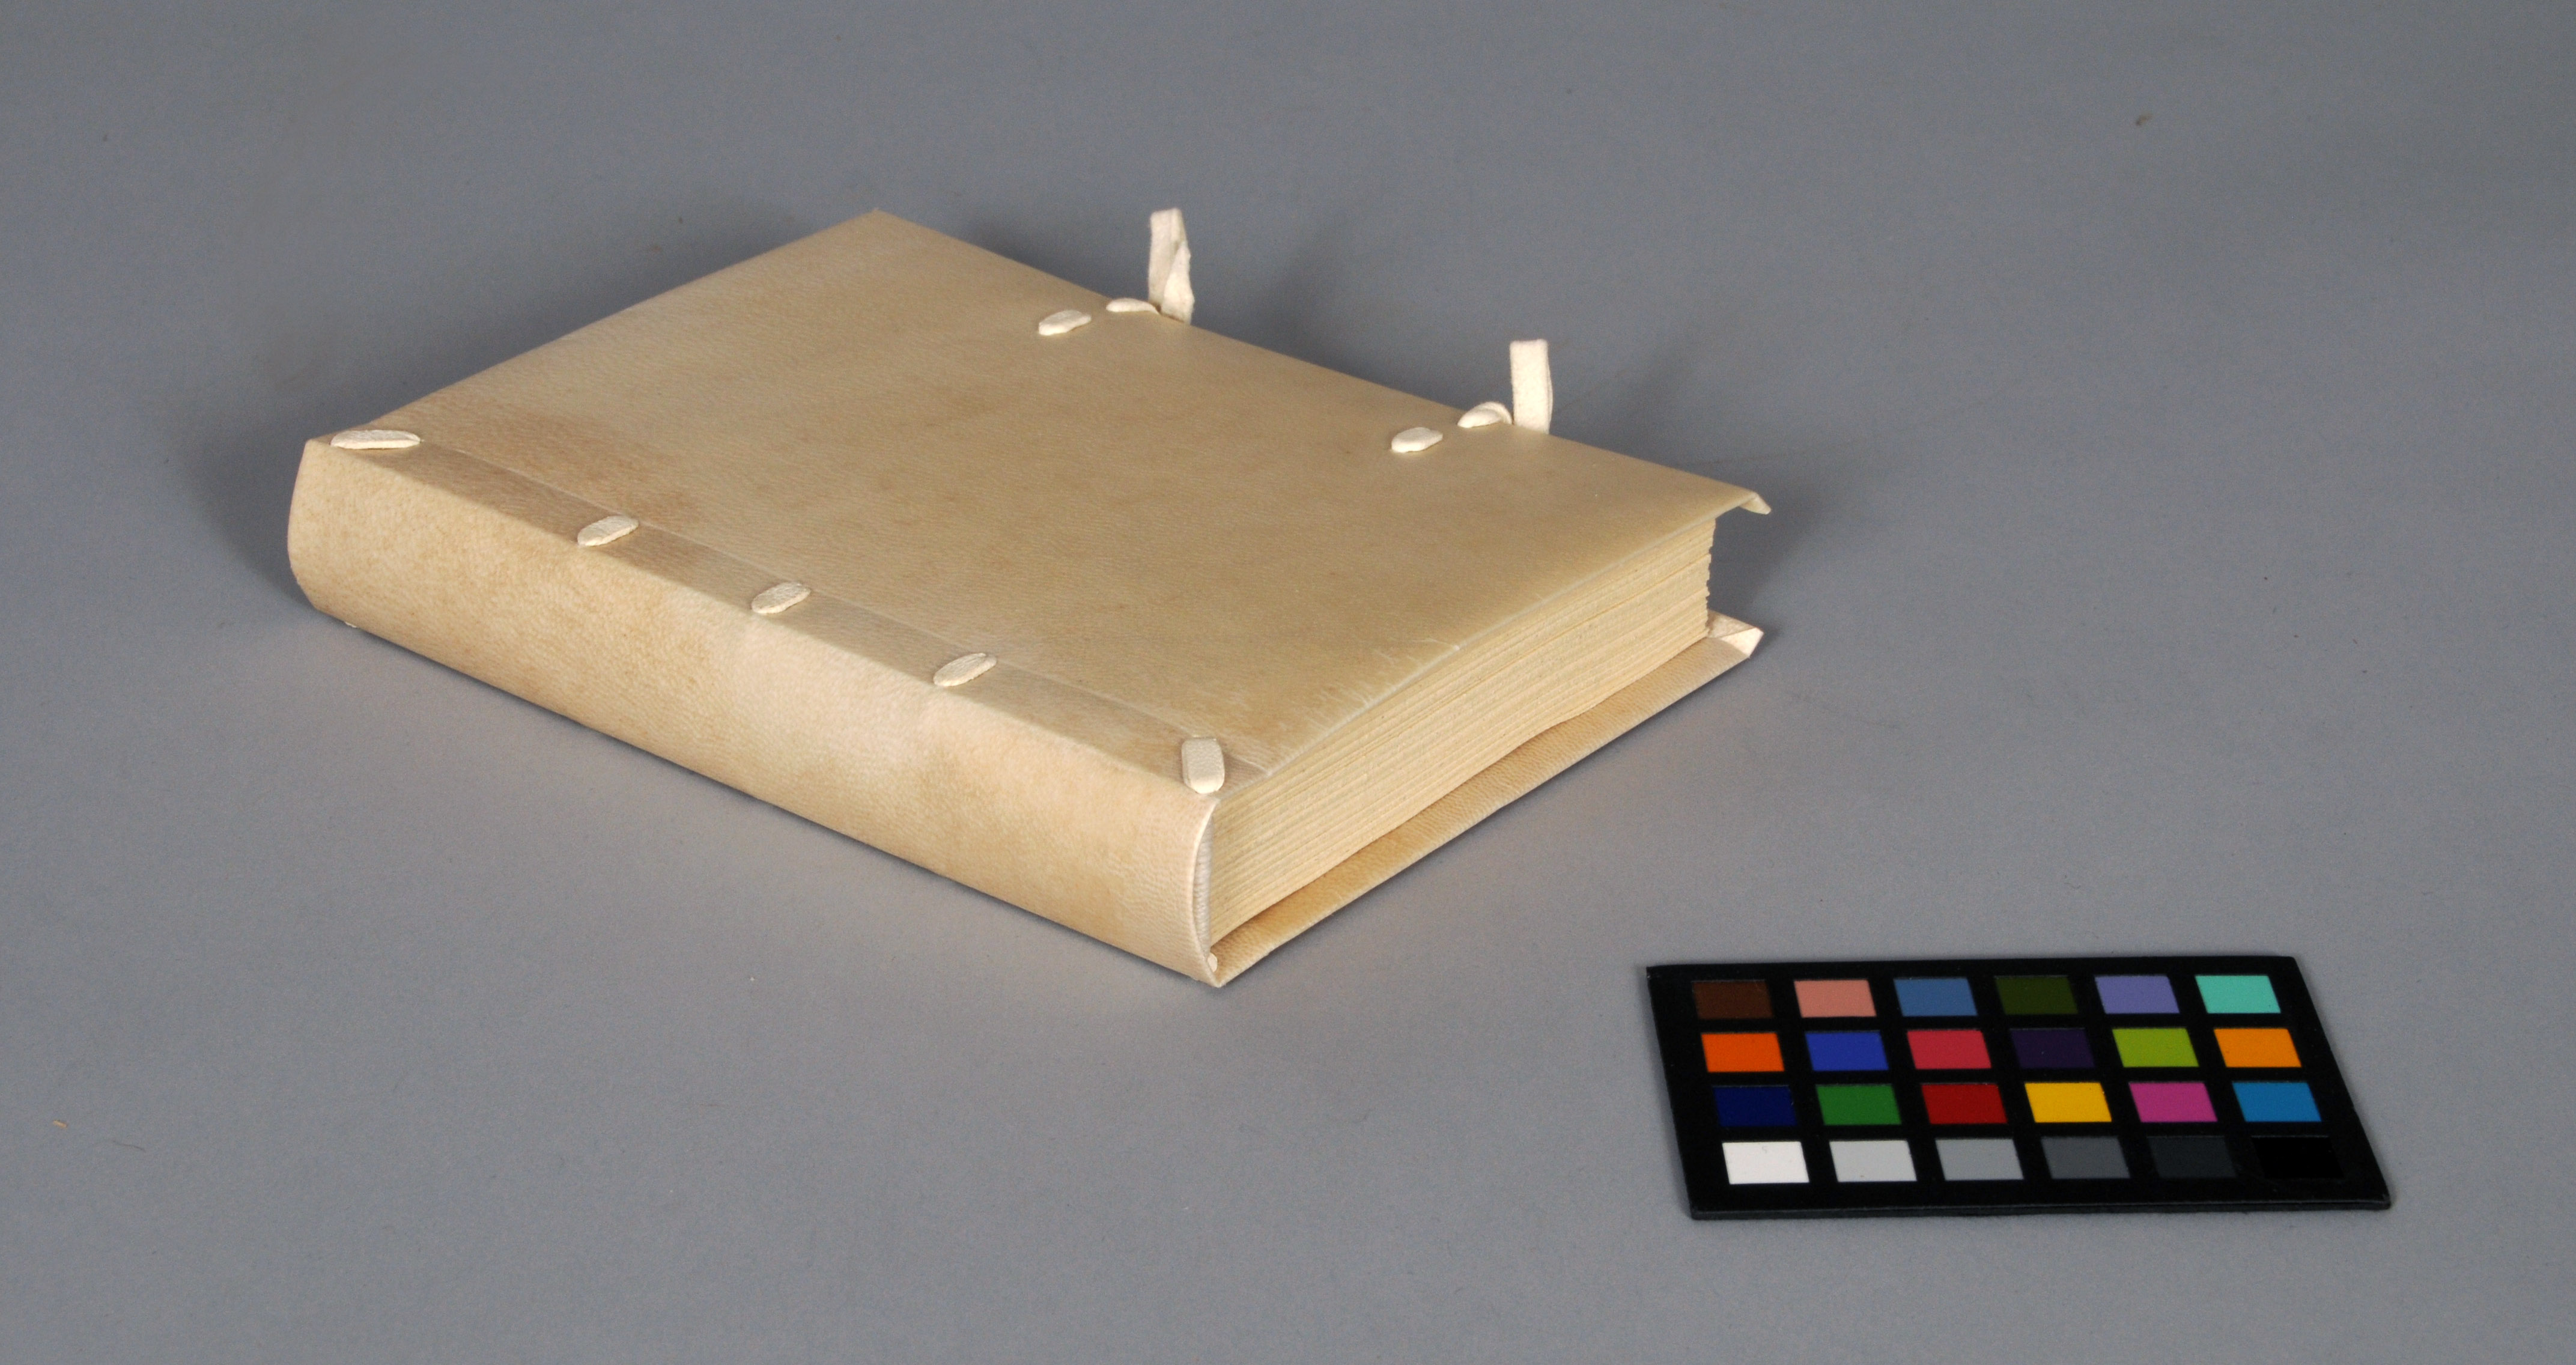 term paper bindings 3) limp parchment binding sewing structure commonly found in southwestern europe from the 15th to 18th centuries with book blocks in parchment and paper.